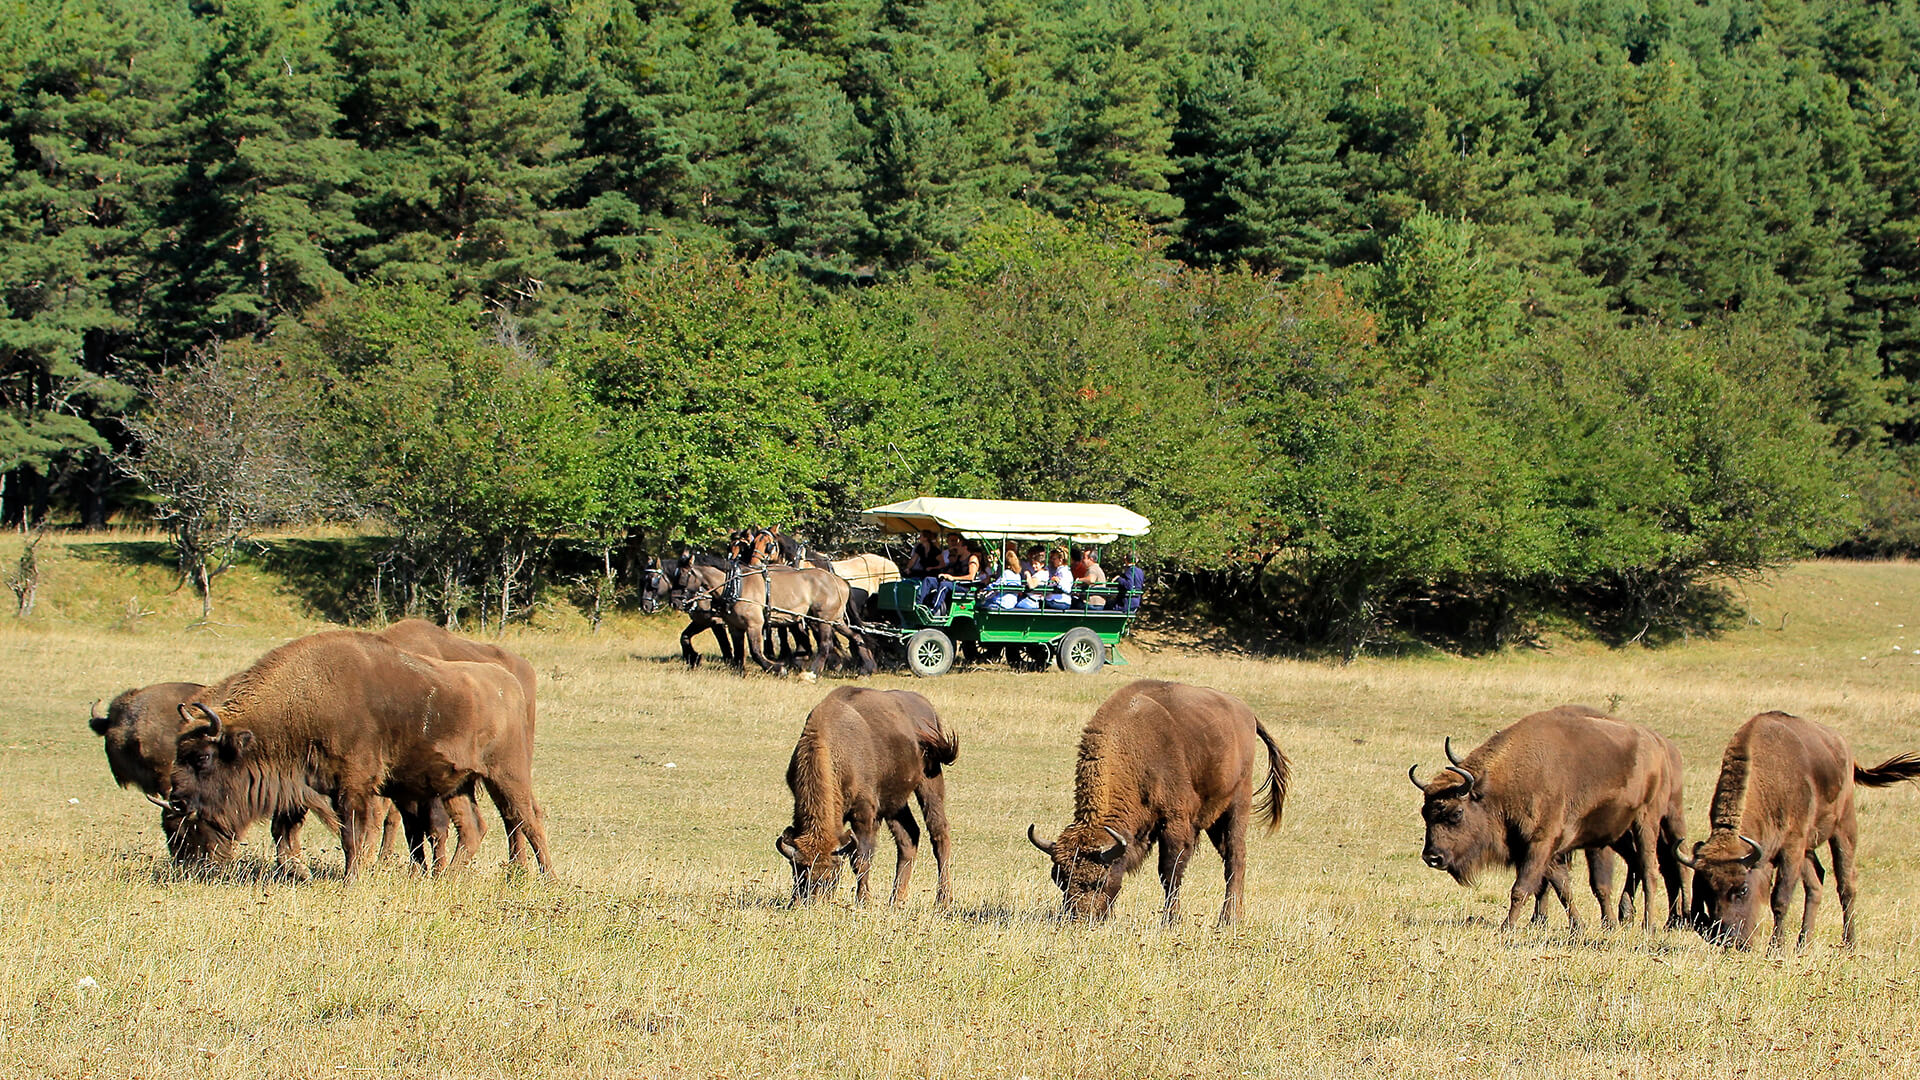 Guided safari in a horse-drawn carriage